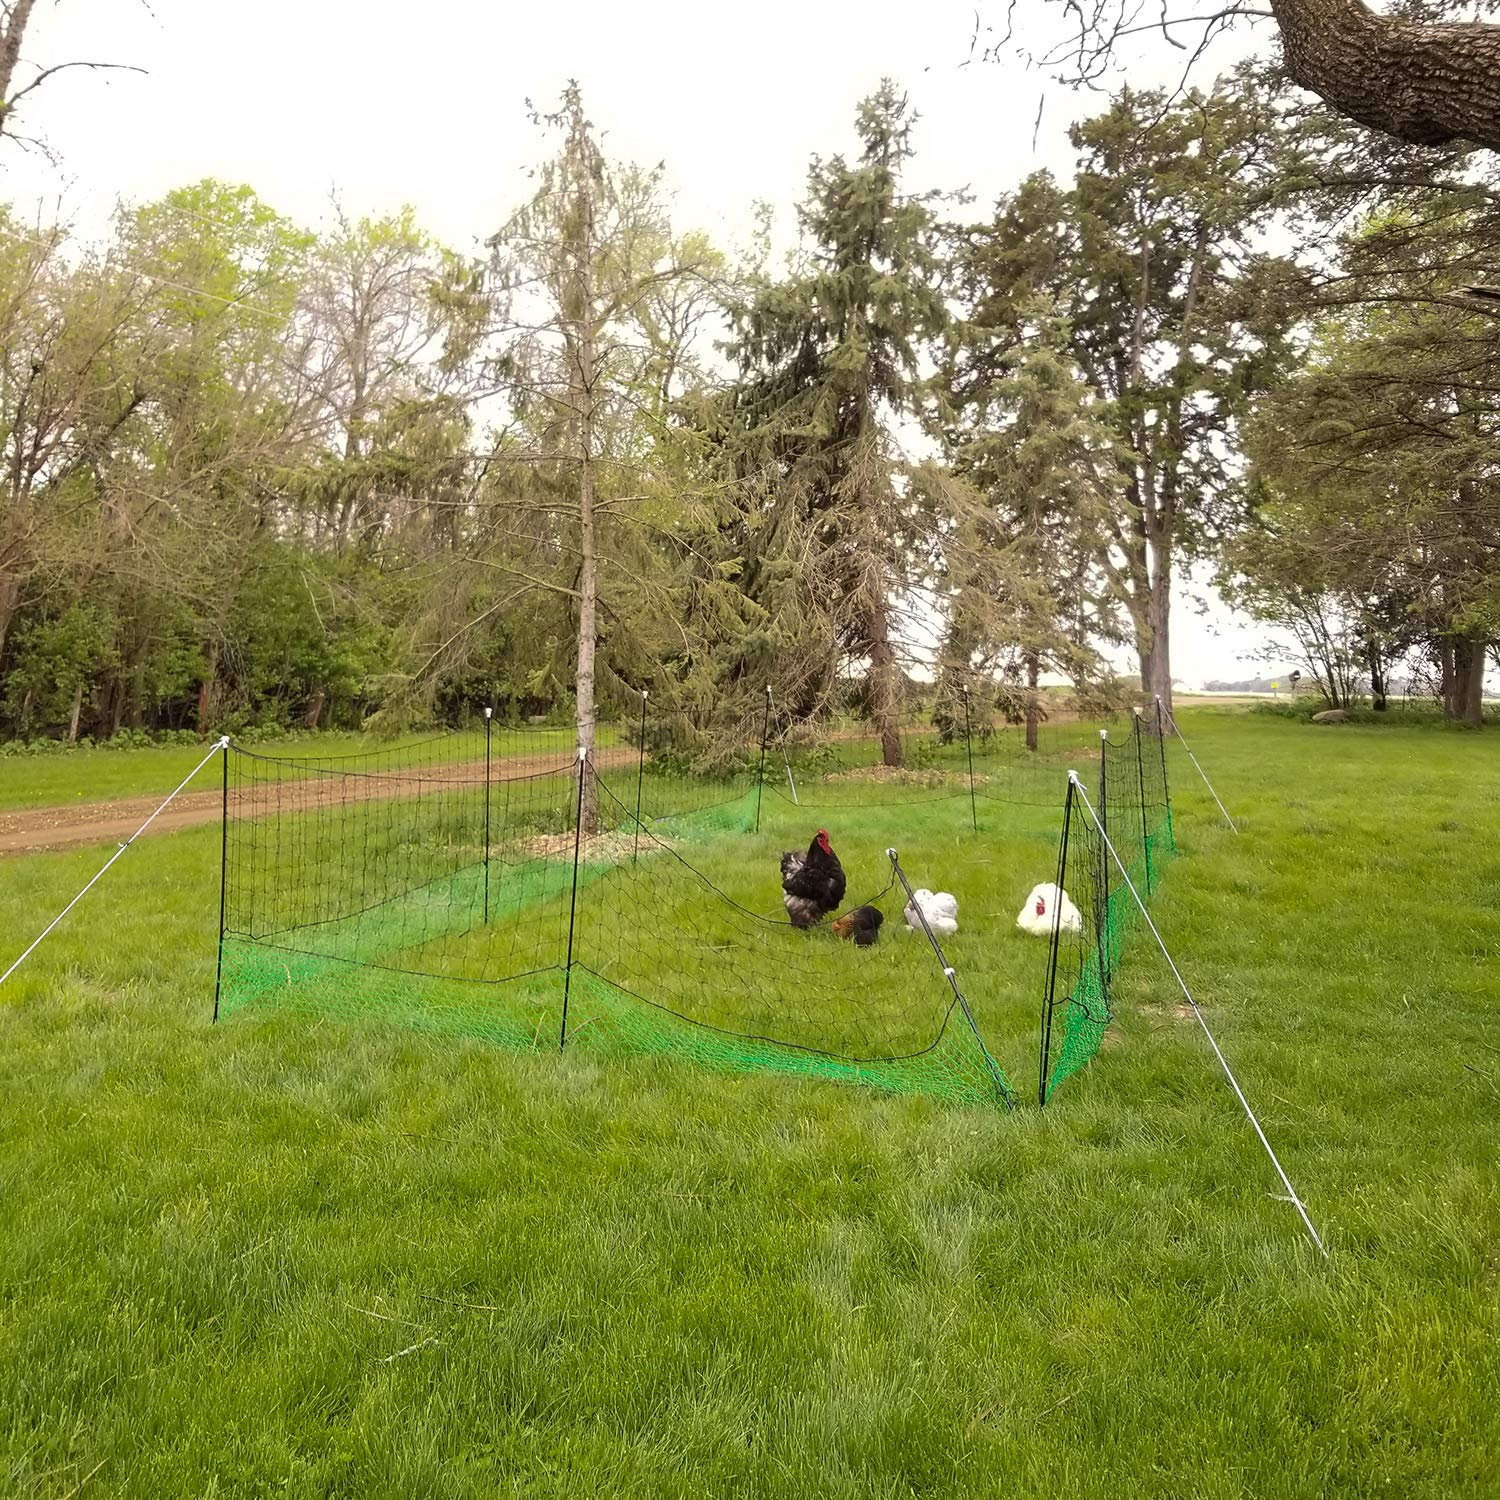 Rural365 Poultry Fencing Chicken Fence Netting 69 by 4 Foot Poultry Netting Chicken Fencing Chicken Mesh Poultry Net